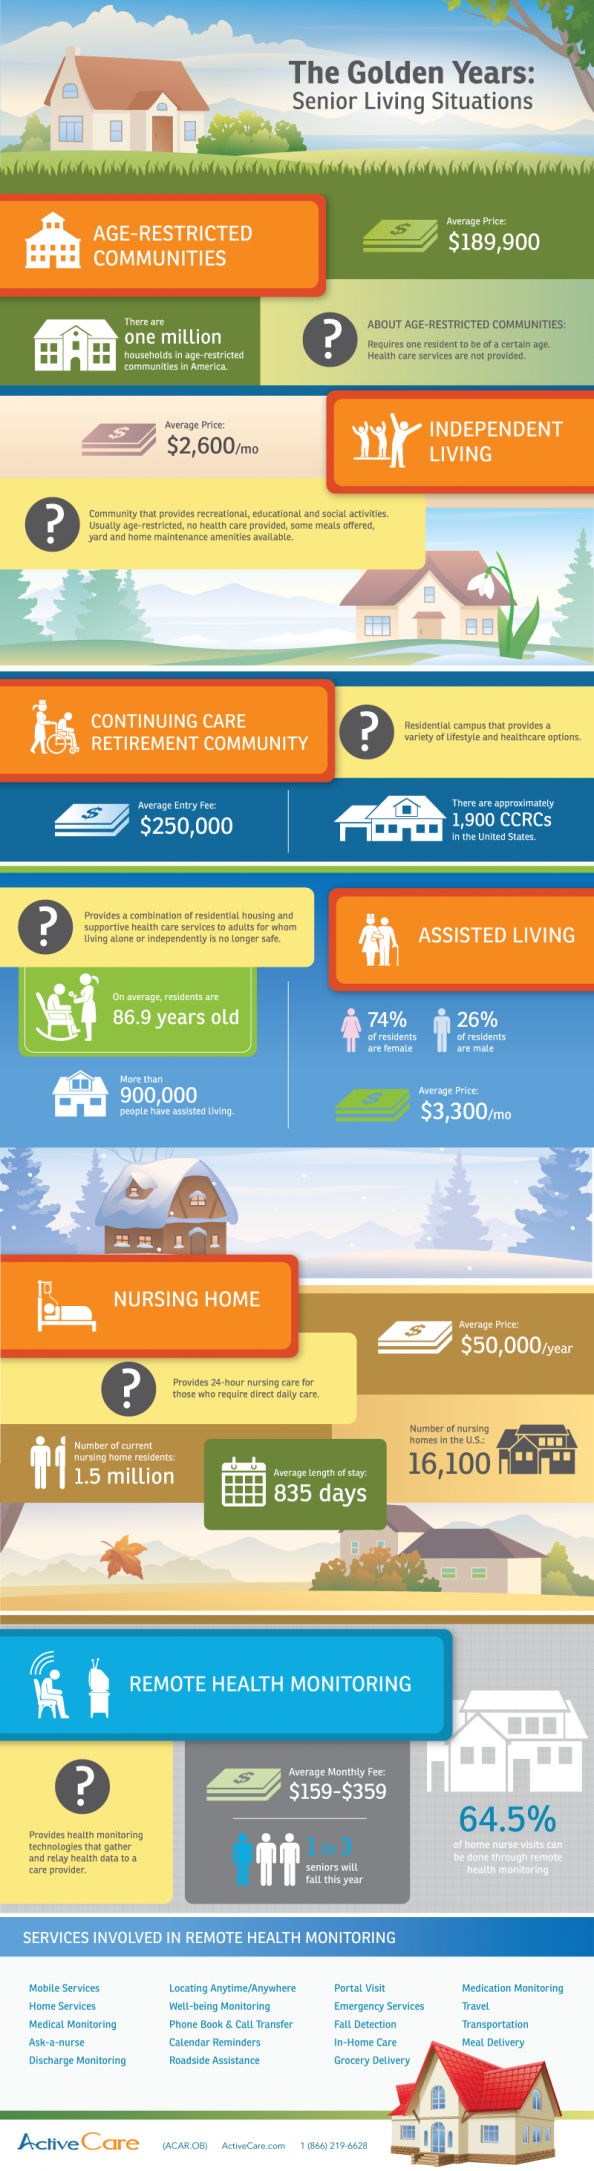 The Golden Years: Senior Living Situations Infographic